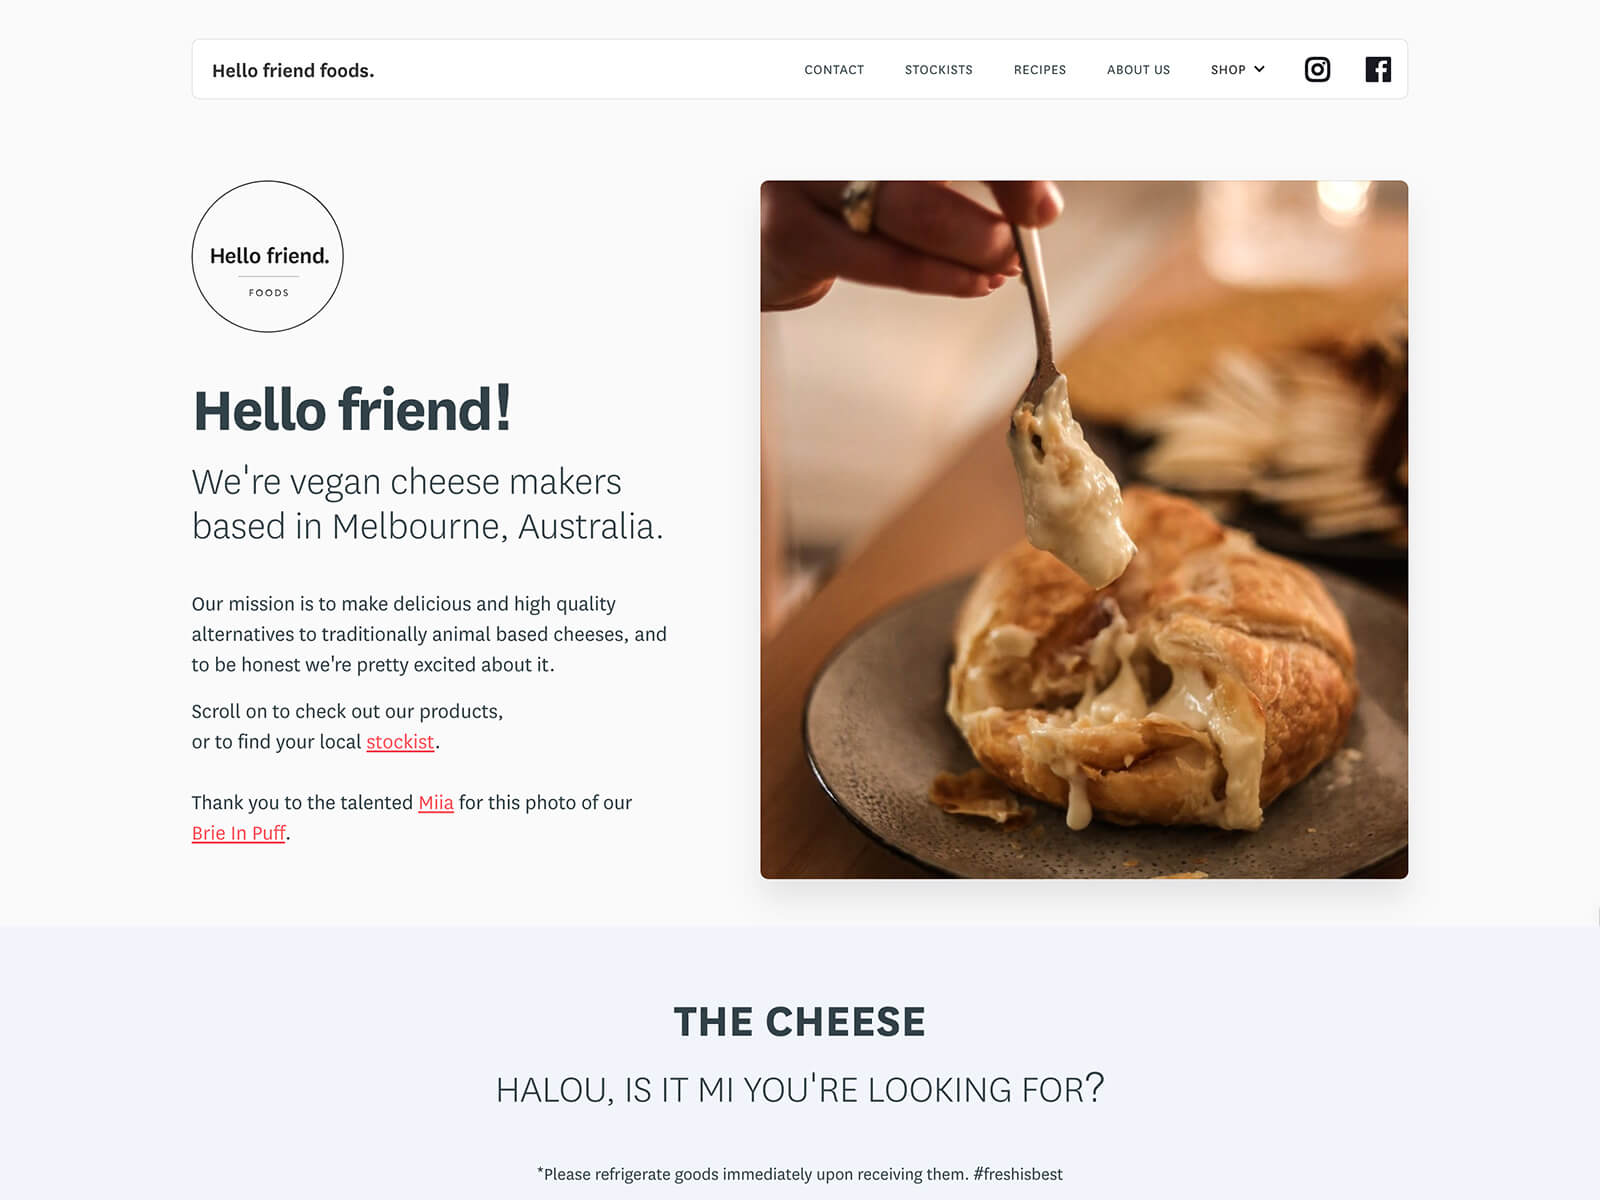 Website design and build in Webflow for vegan cheese makers, Hello Friend Foods